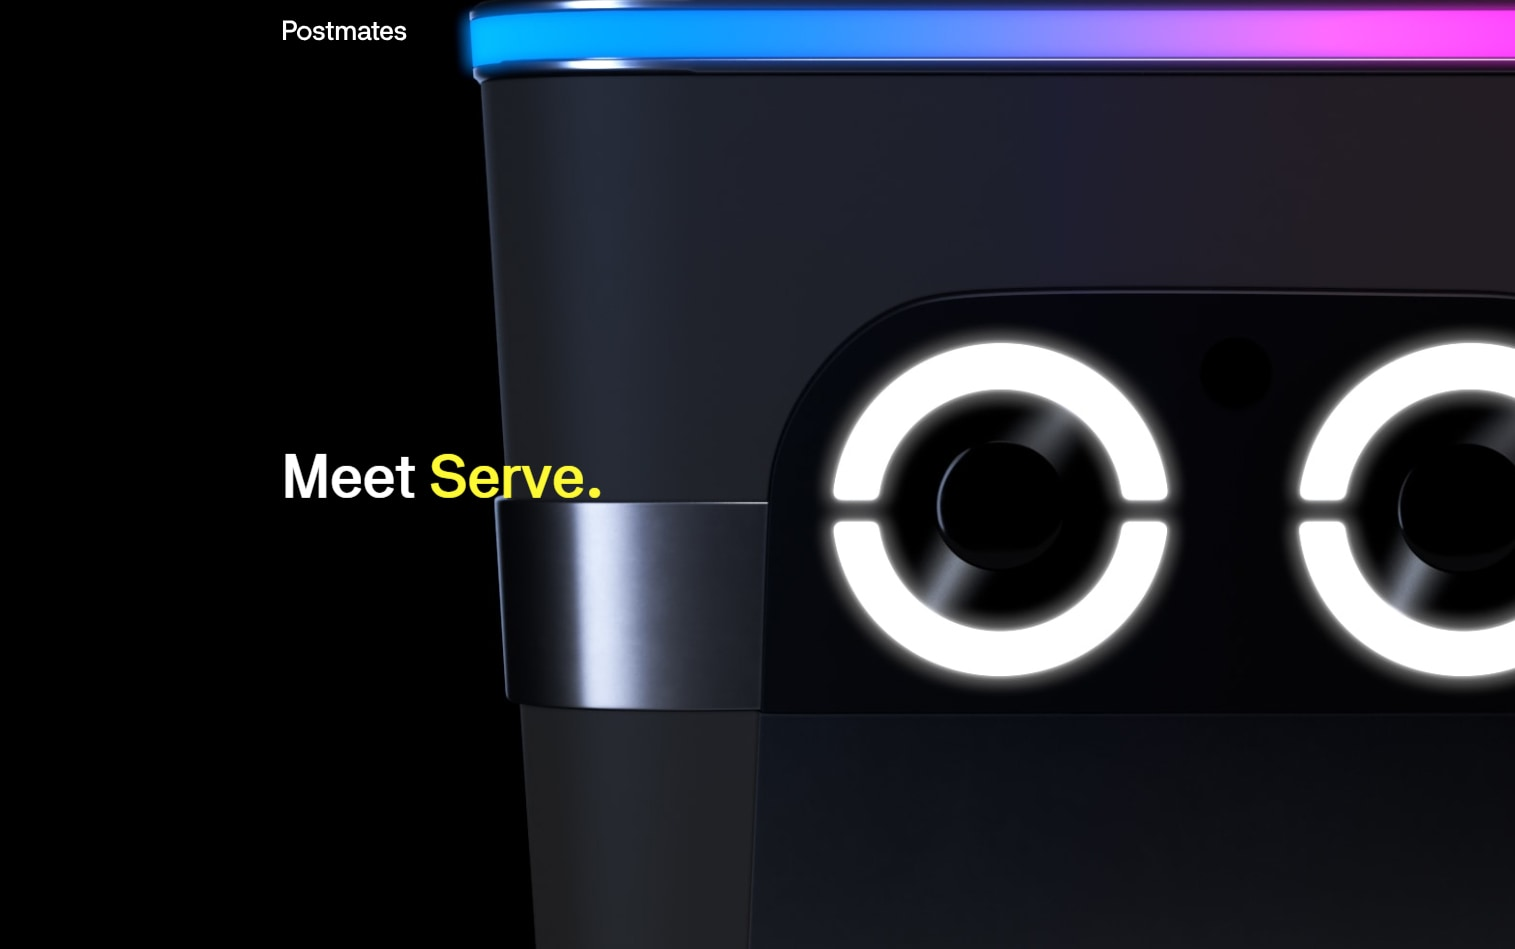 POSTMATES: Meet Serve